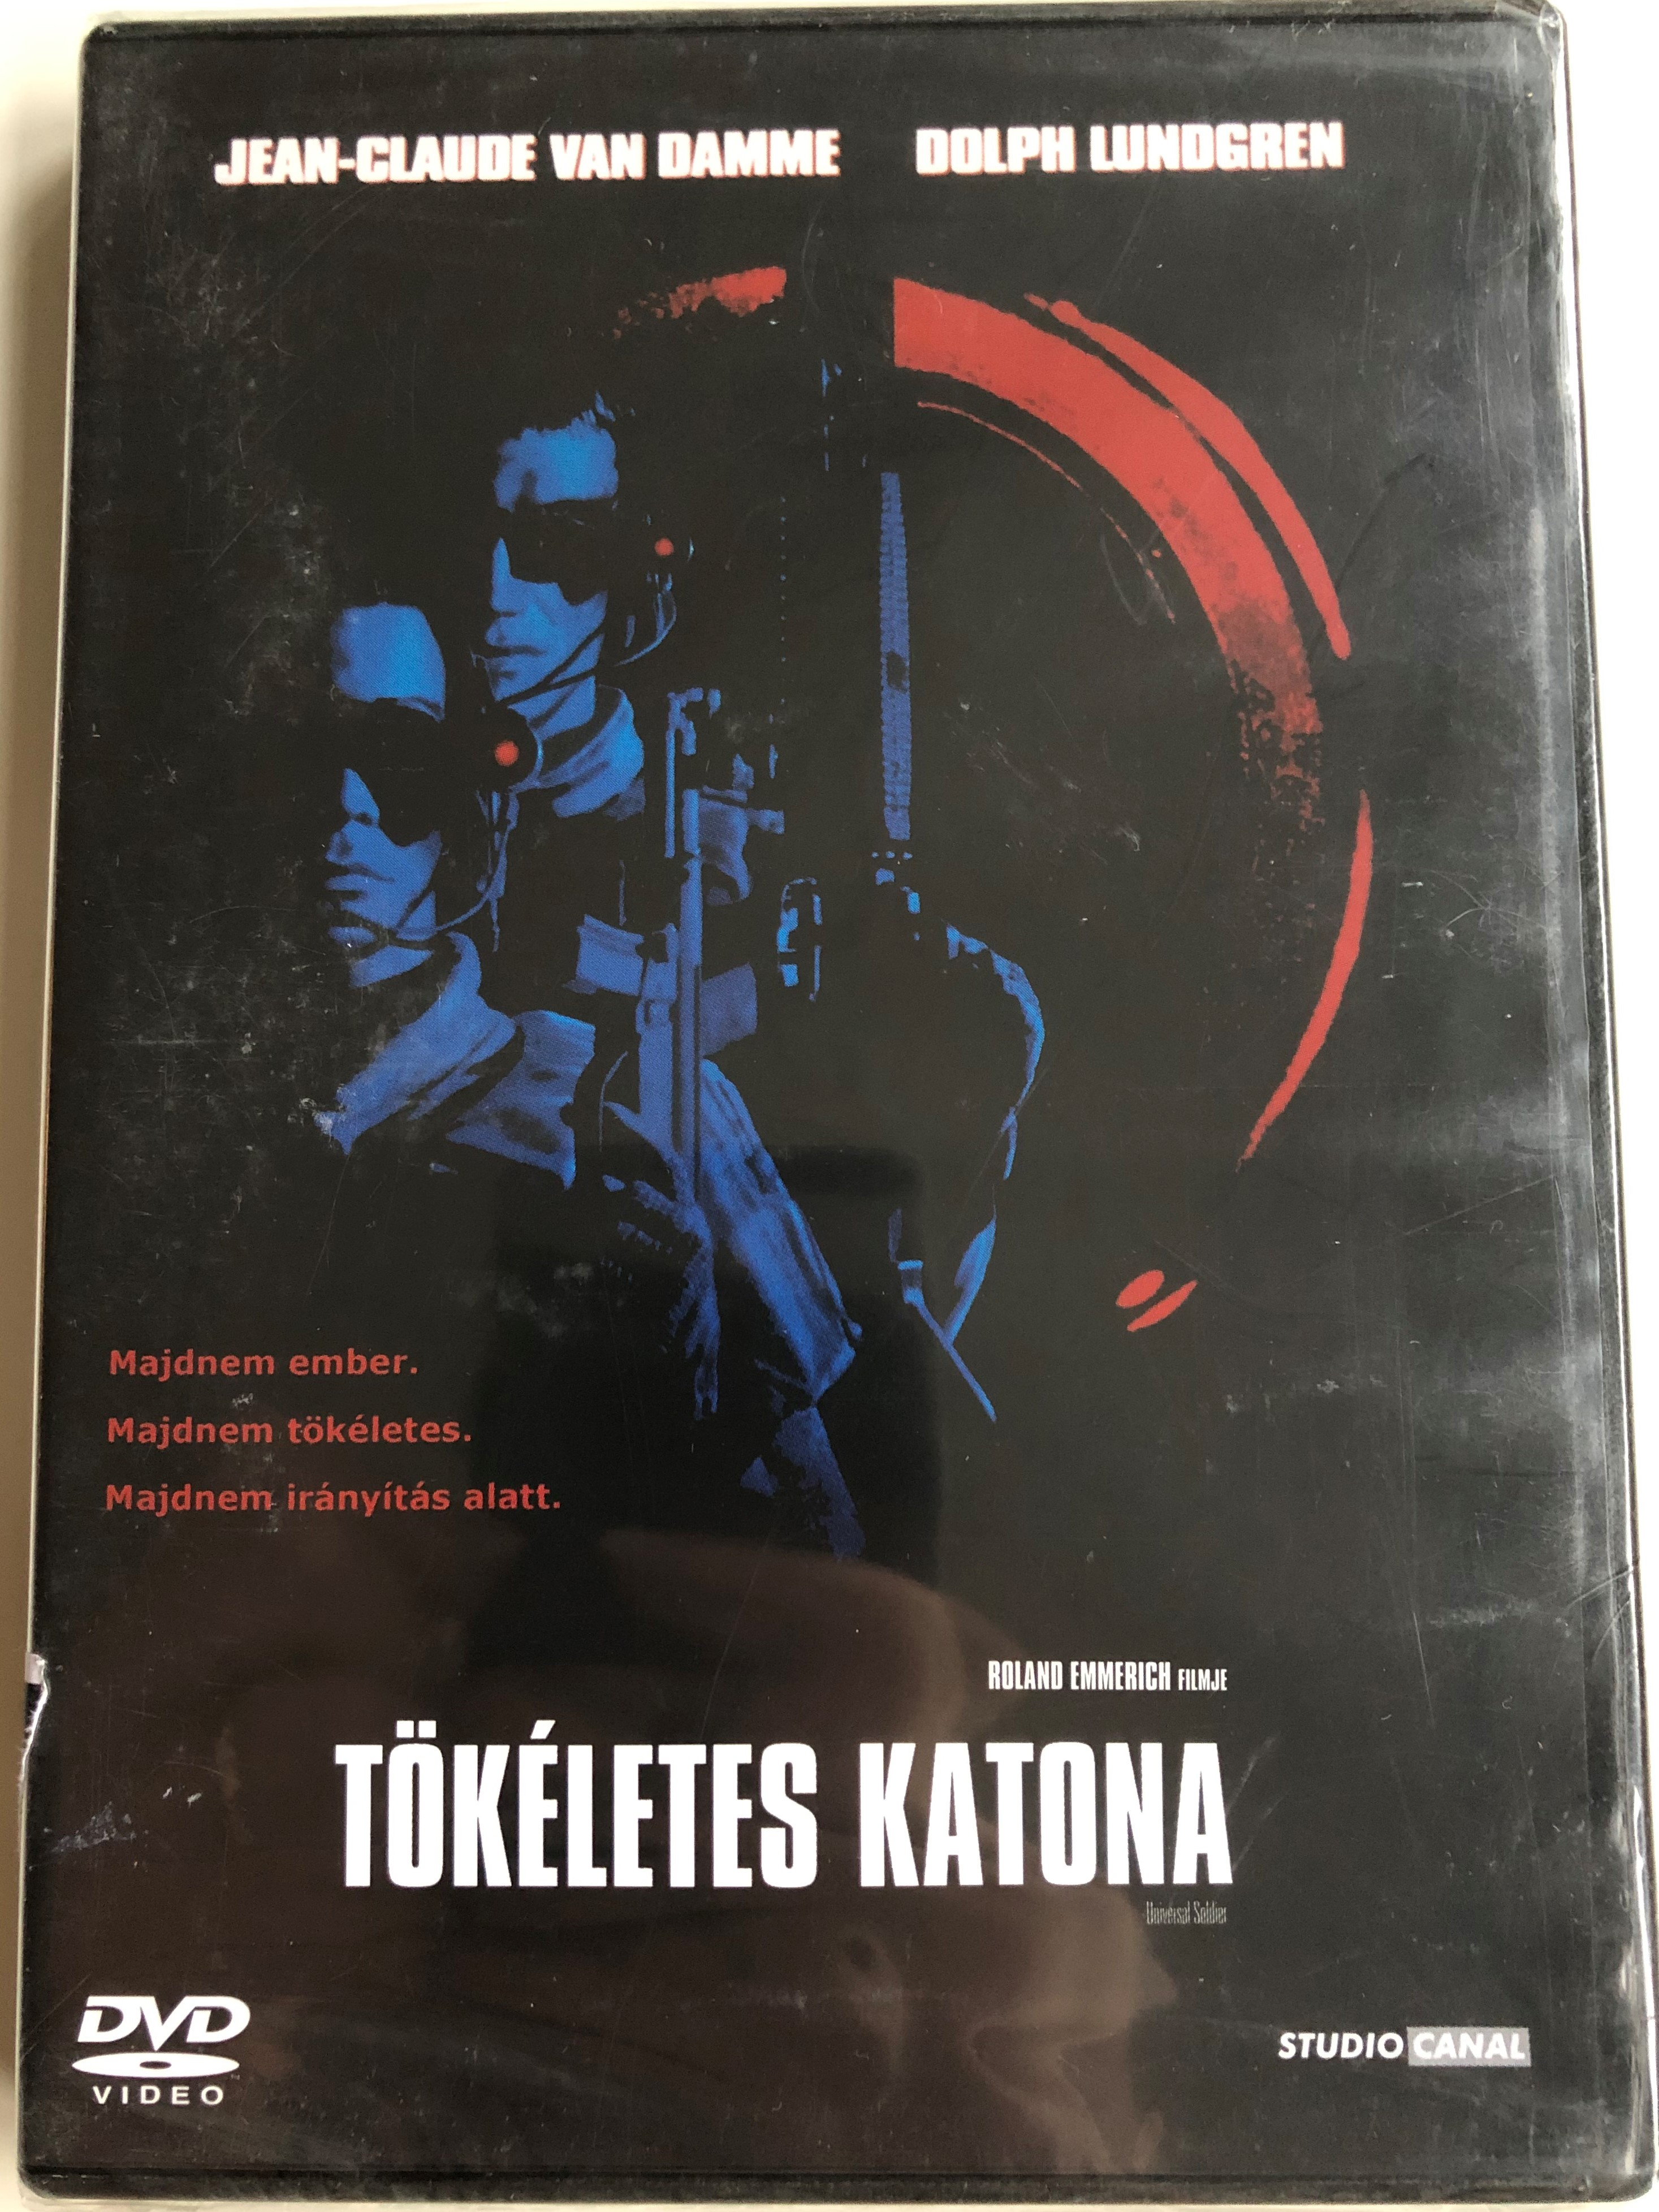 universal-soldier-dvd-1992-t-k-letes-katona-directed-by-roland-emmerich-1.jpg